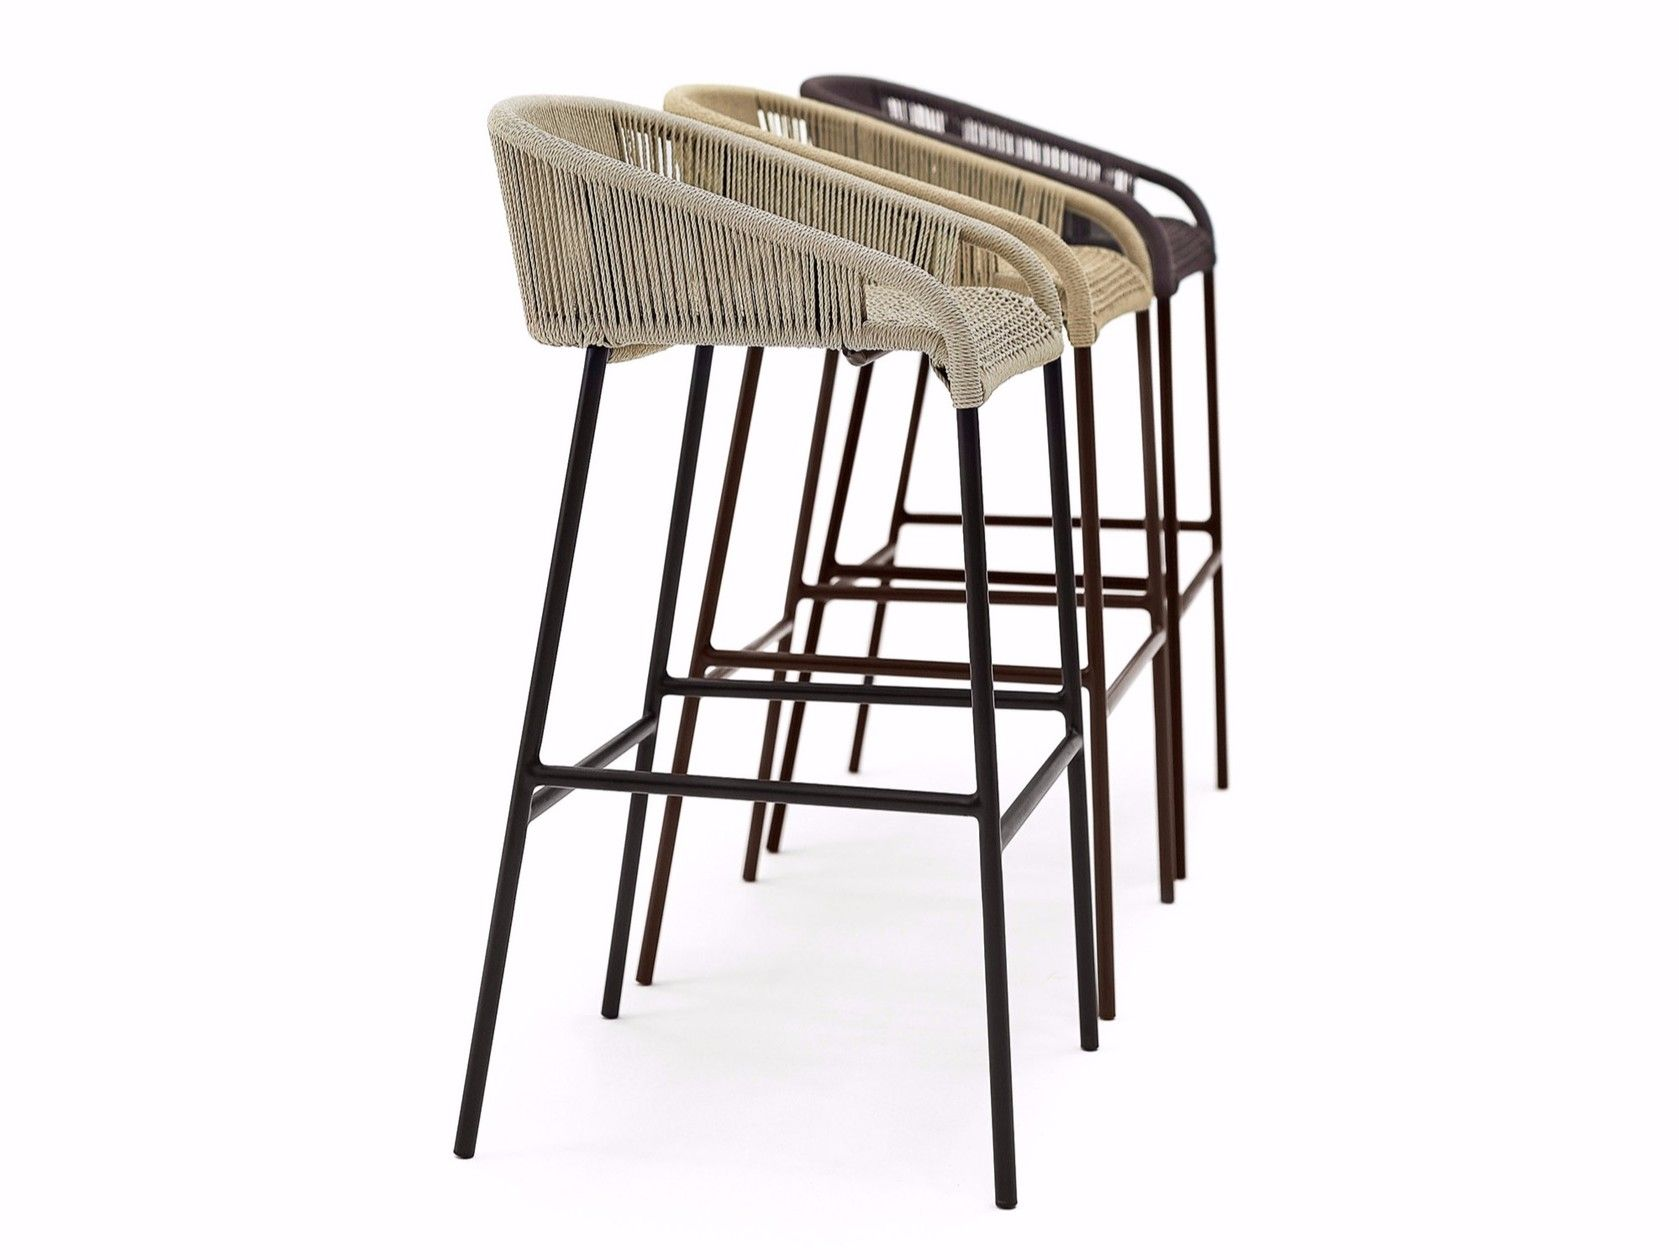 Synthetic Fibre Stool With Back Cricket Stool With Back